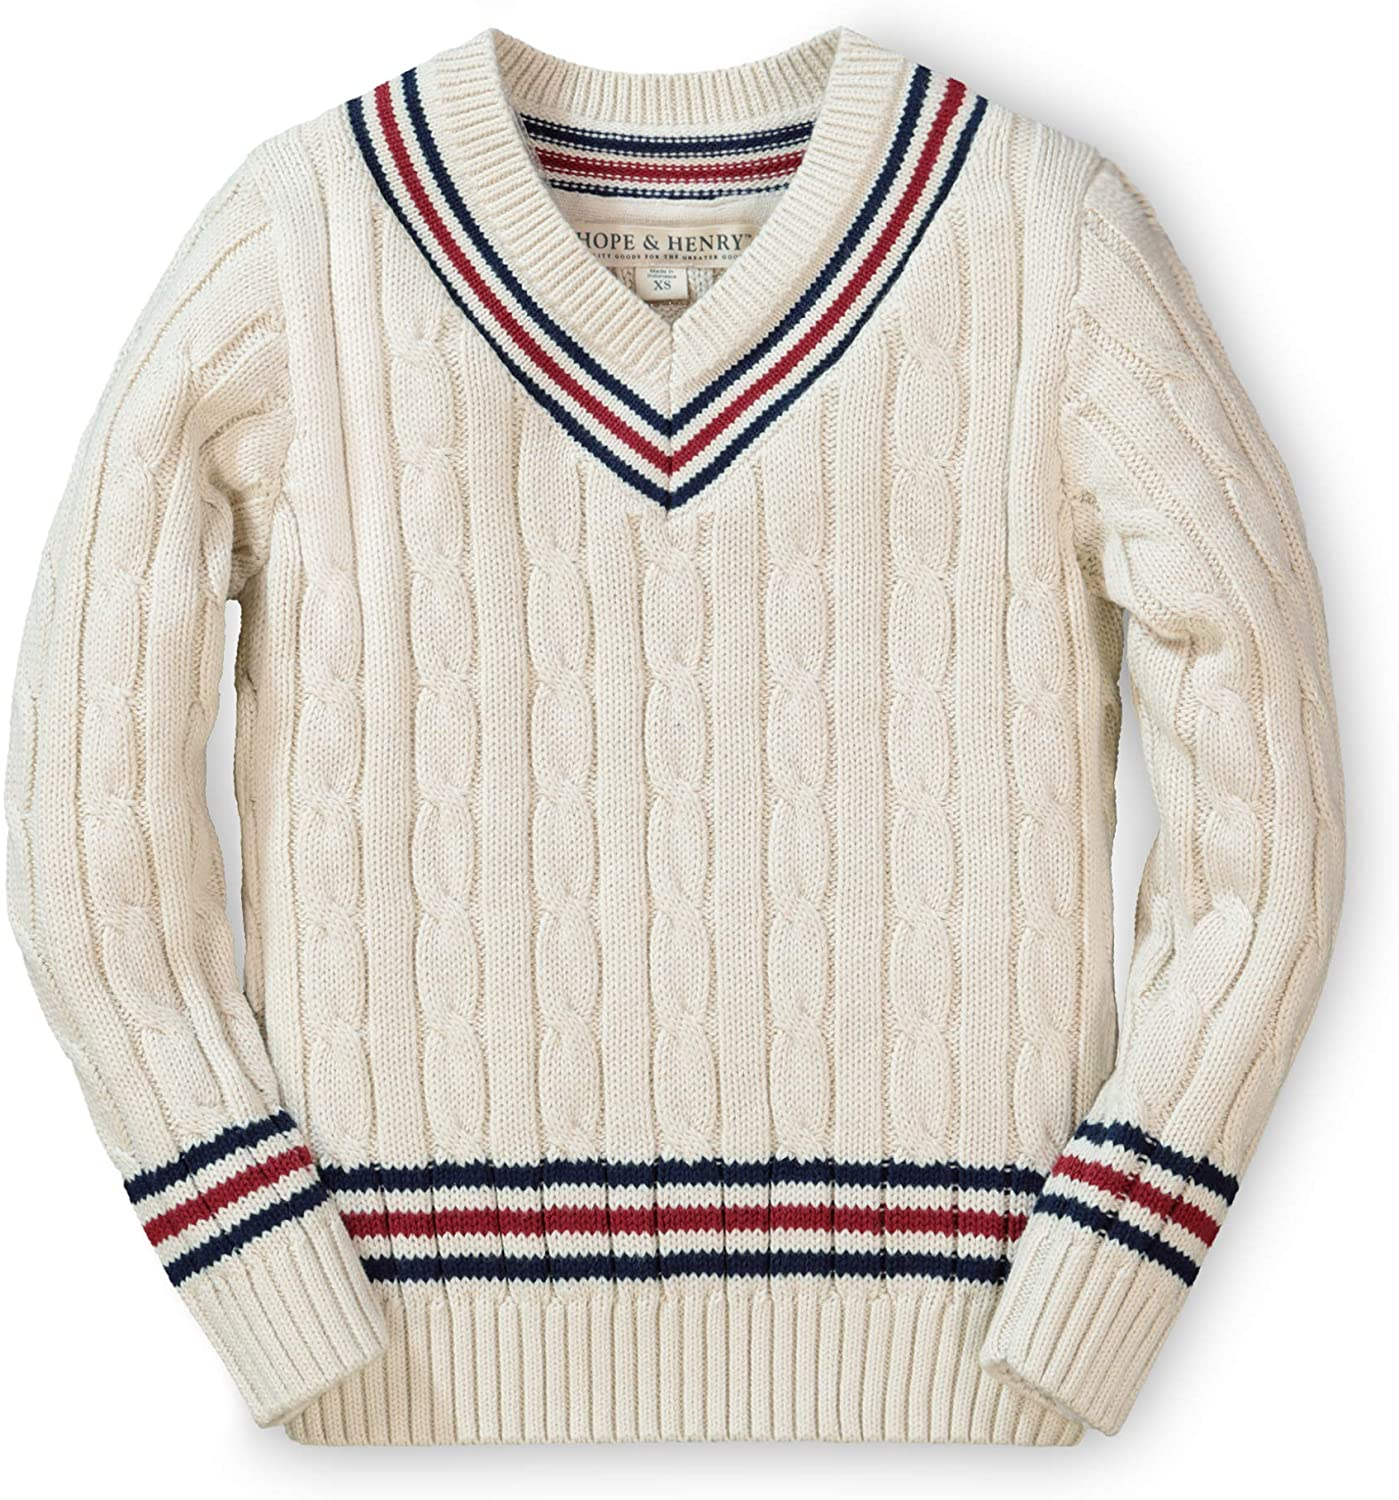 1920s Children Fashions: Girls, Boys, Baby Costumes Hope & Henry Boys Long Sleeve V-Neck Cricket Sweater $25.95 AT vintagedancer.com